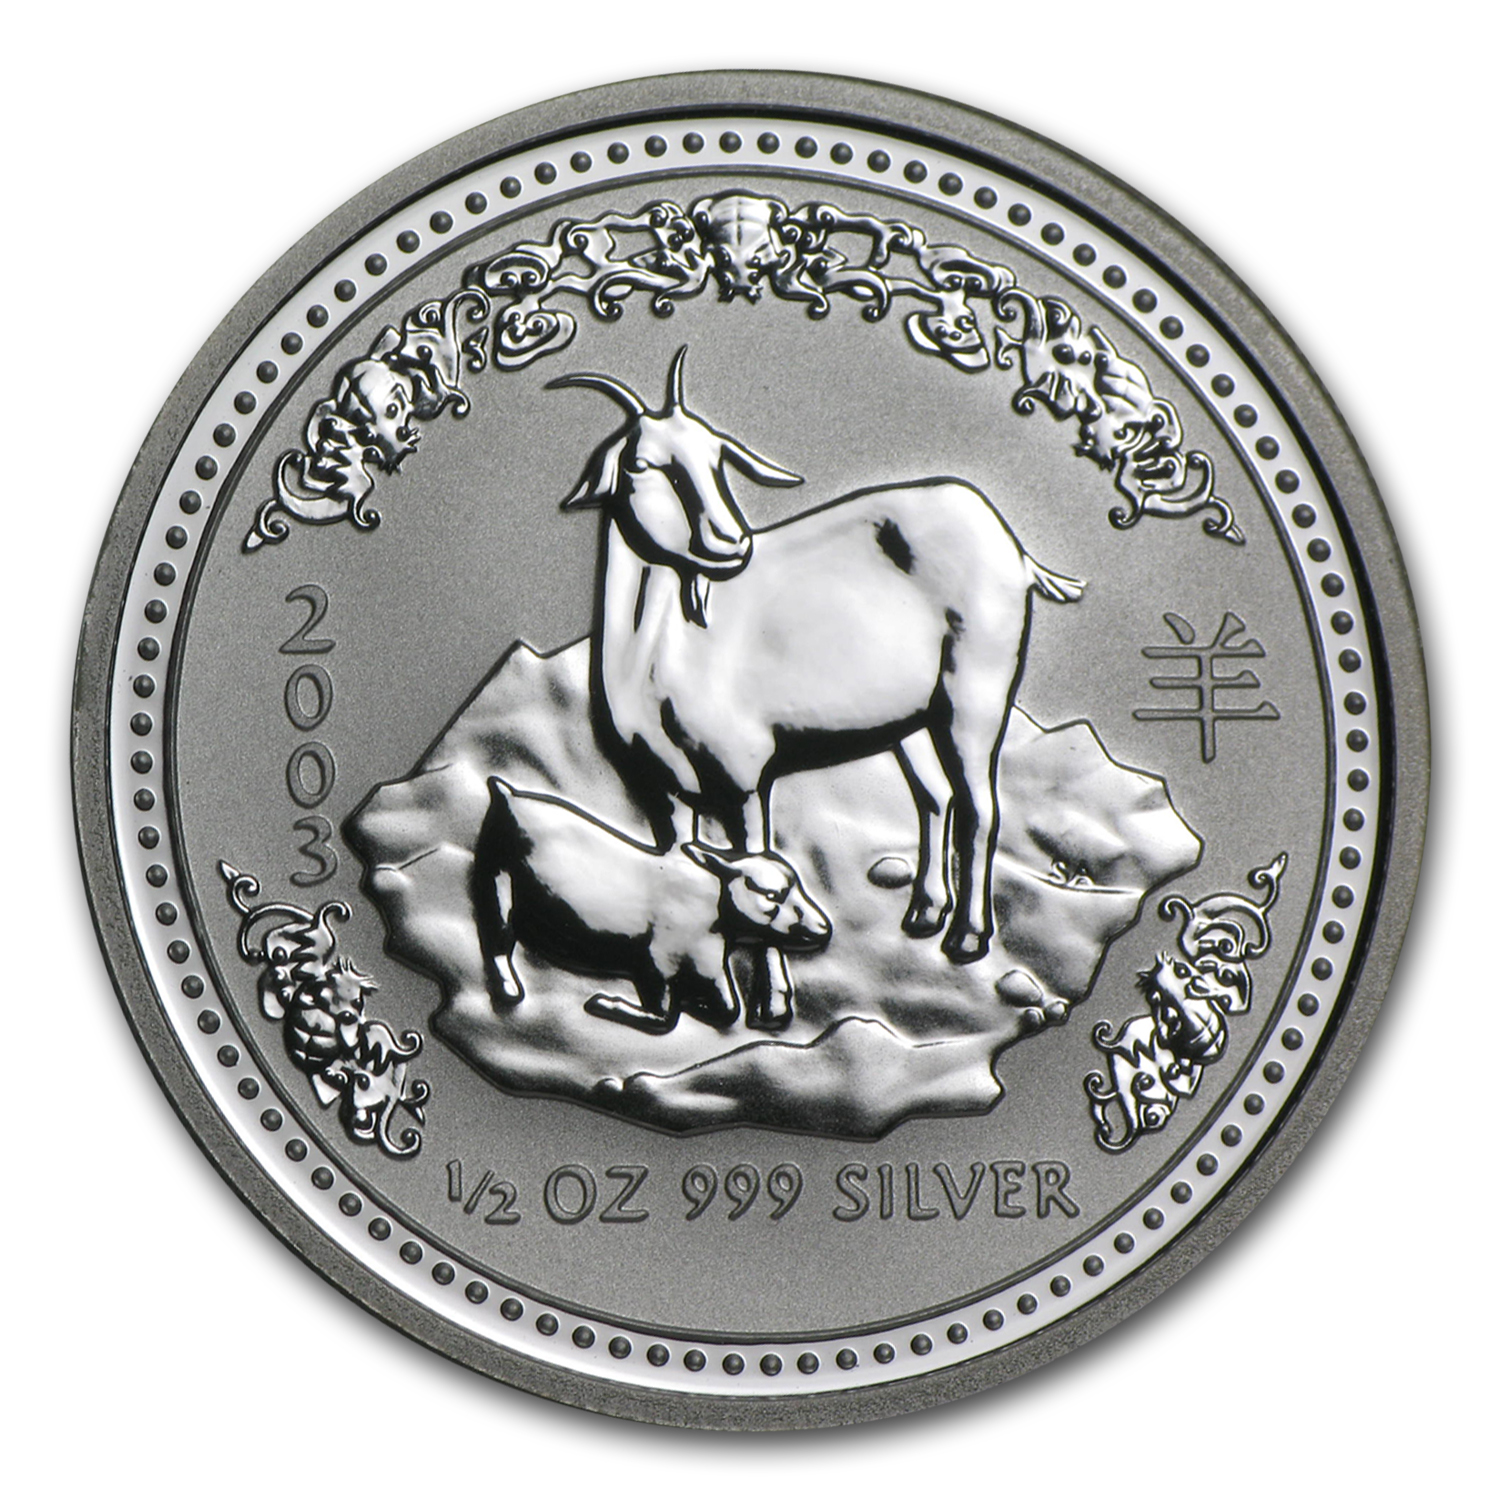 2003 Australia 1/2 oz Silver Year of the Goat BU